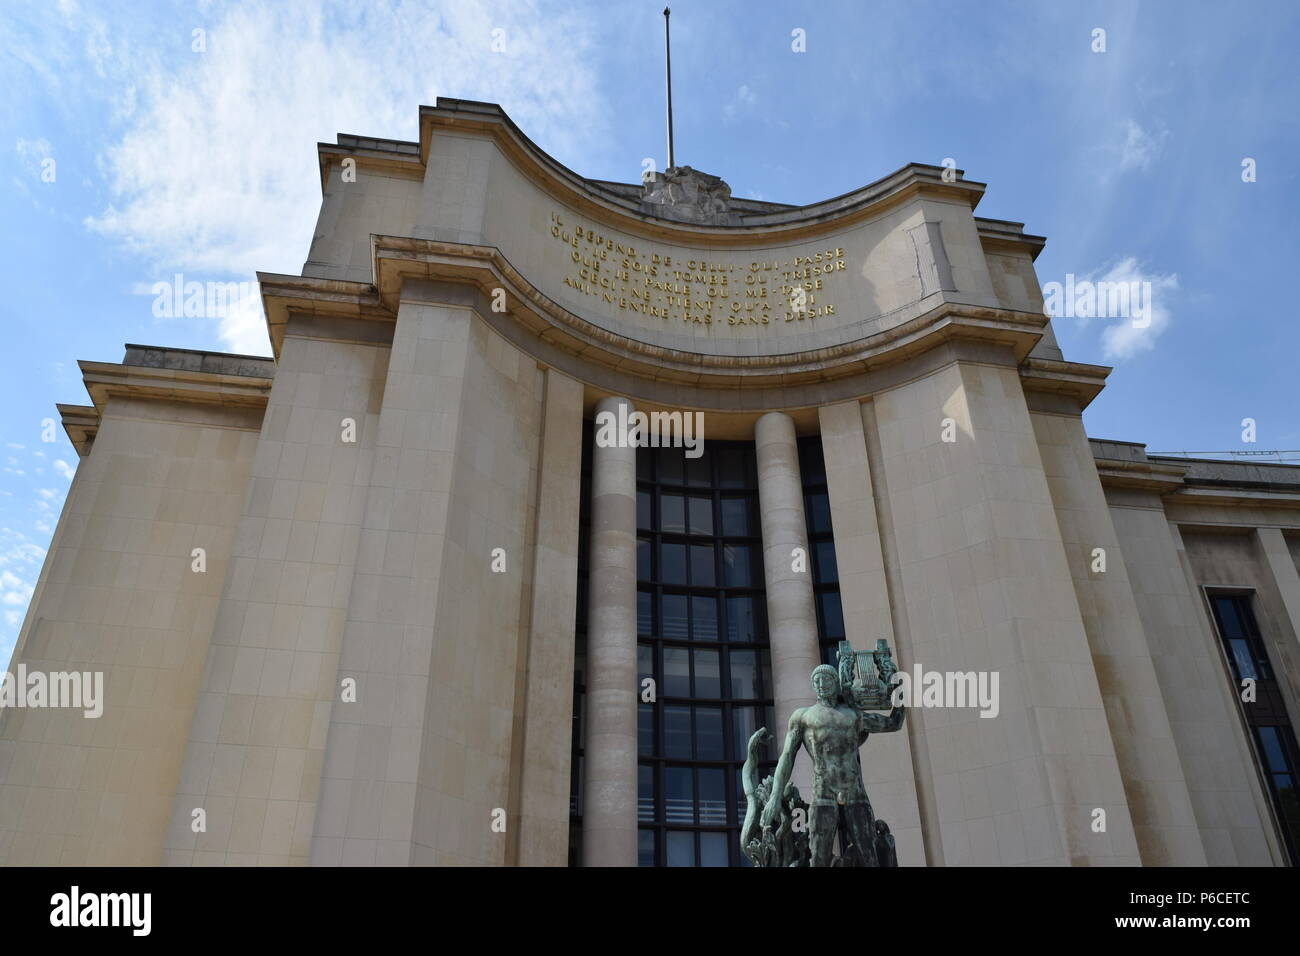 Located just in front of the Eiffel Tower, this Palais de Chaillot is full of tremendous architecture. Stock Photo